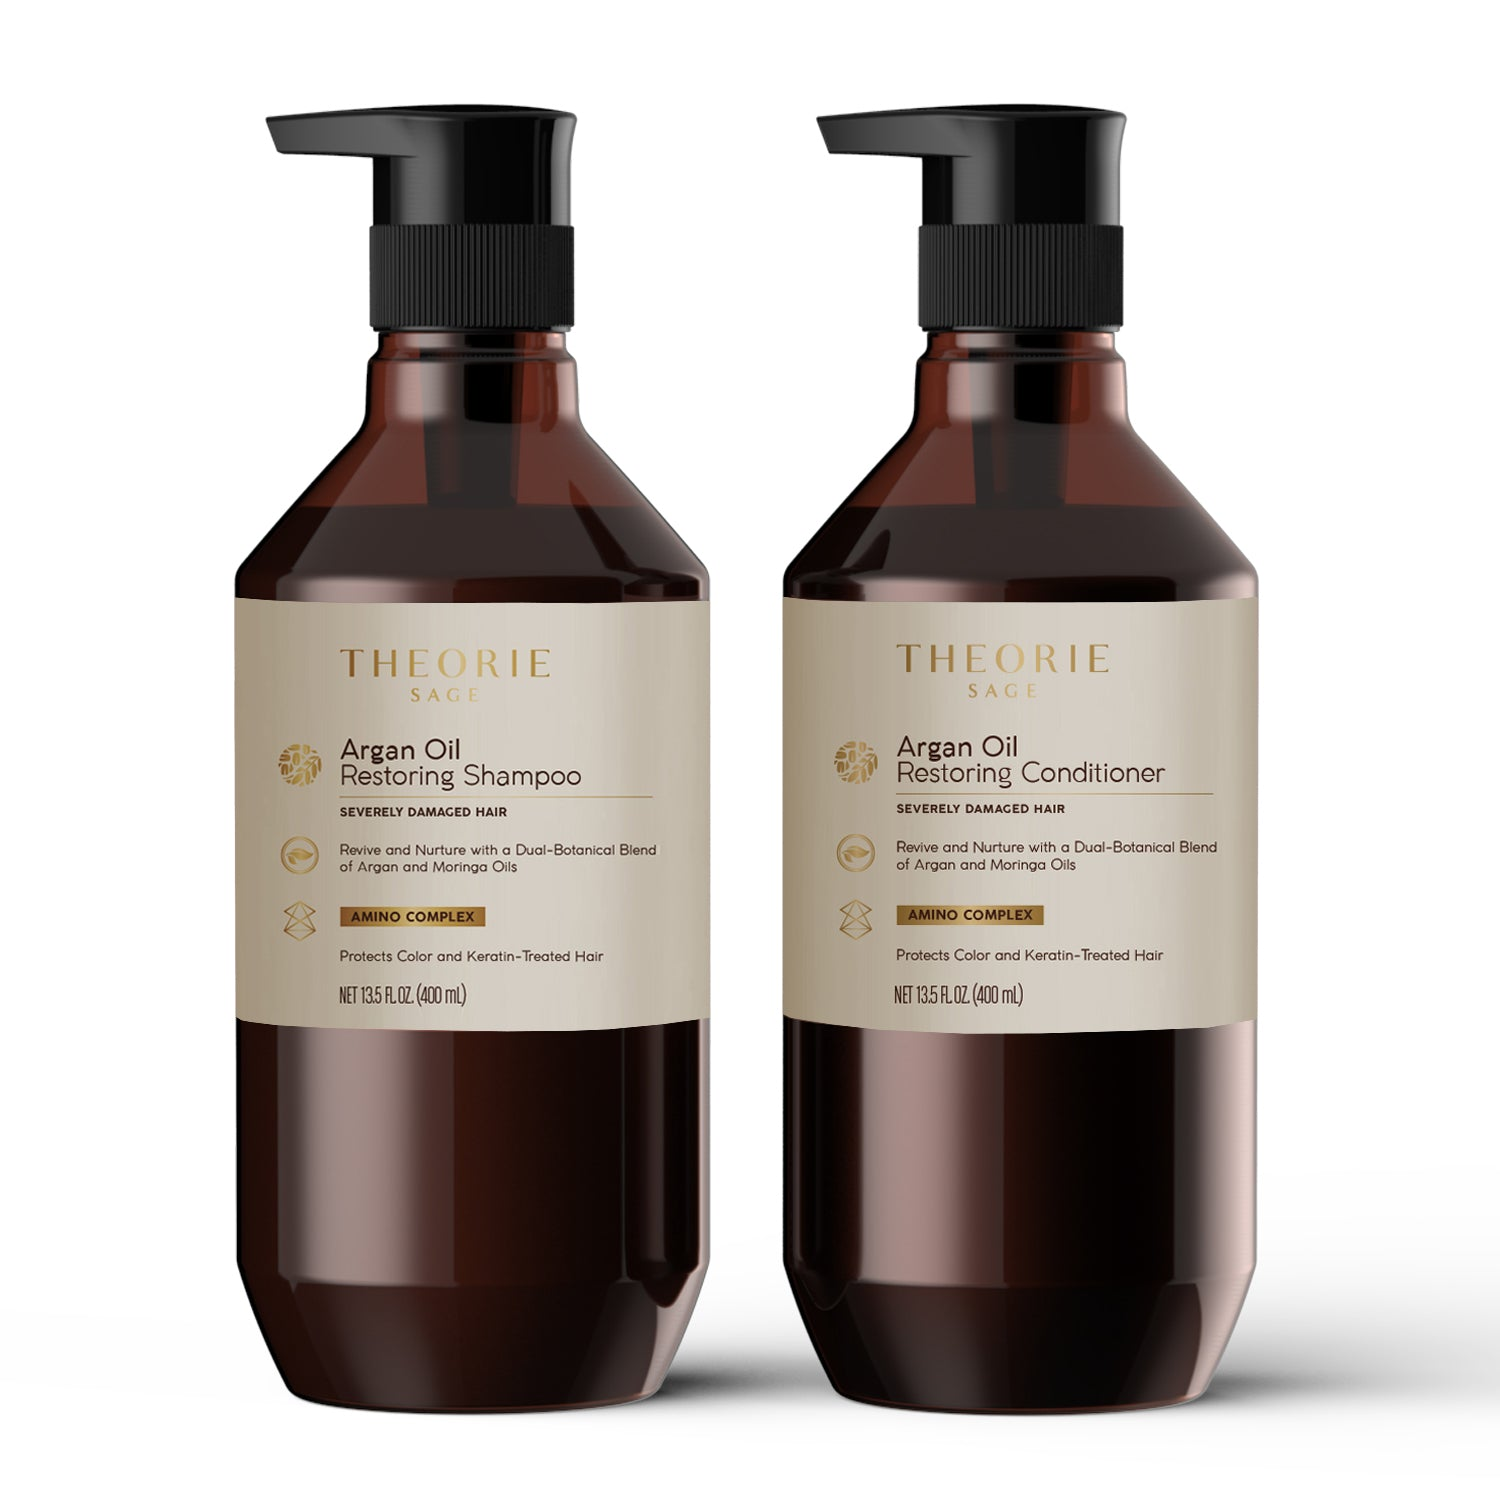 Theorie: Sage - Argan Oil Restoring Shampoo and Conditioner Set